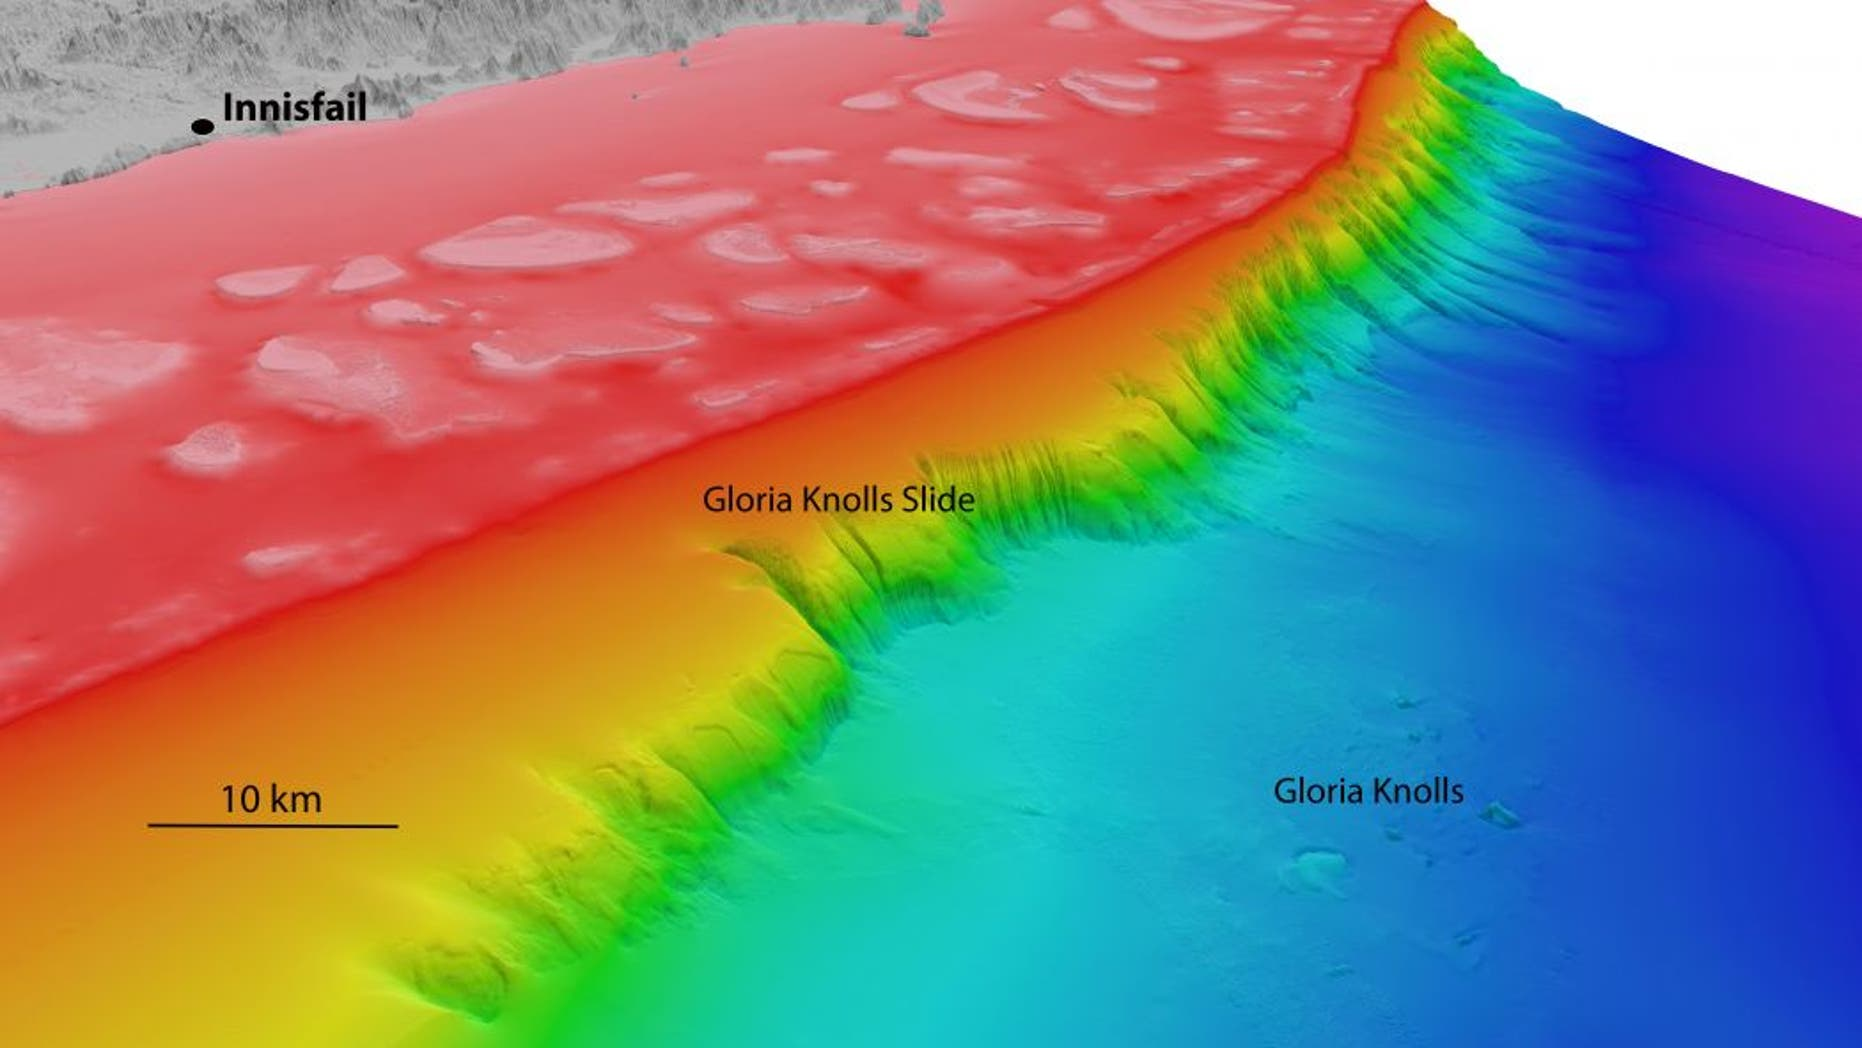 North-westerly view of the Gloria Knolls Slide and Gloria Knolls off Innisfail. Depths are coloured red (shallow) to blue (deep), over a depth range of about 5,577 feet. (Image: www.deepreef.org)